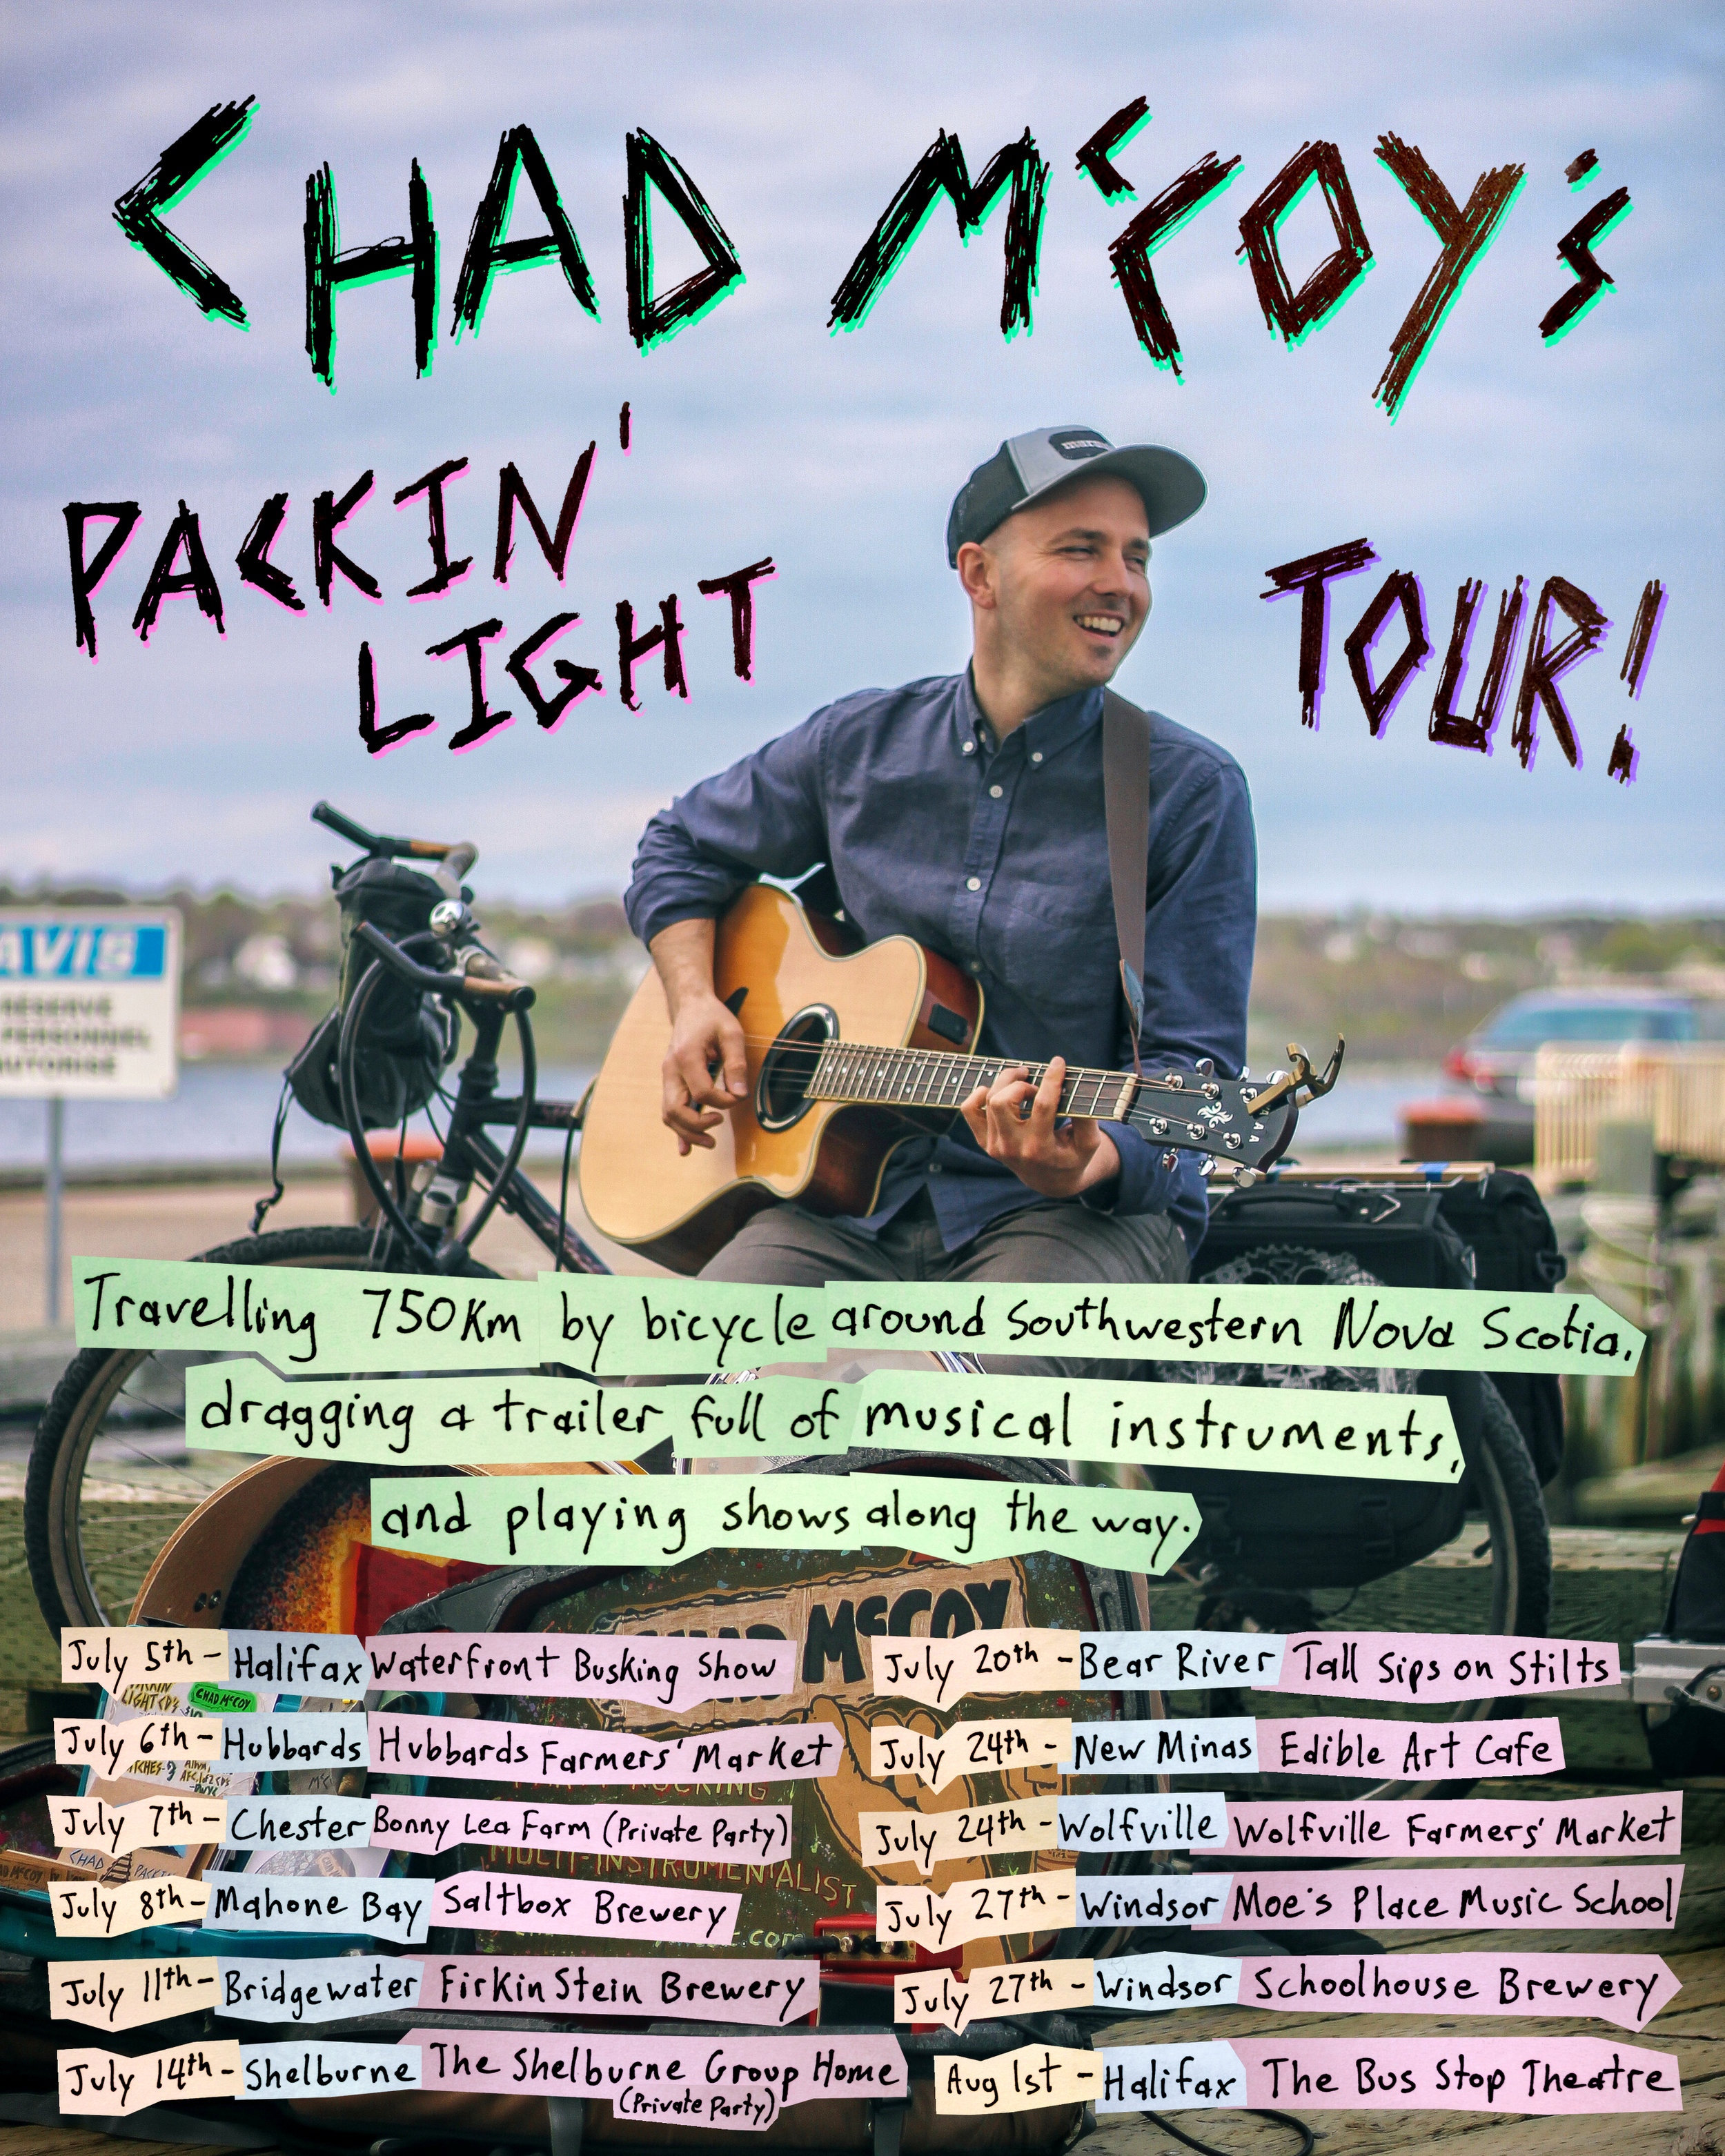 Chad McCoy's Packin' Light Tour!  Travelling 750km by bicycle around Southwestern Nova Scotia, dragging a trailer full of musical instruments, and playing shows along the way